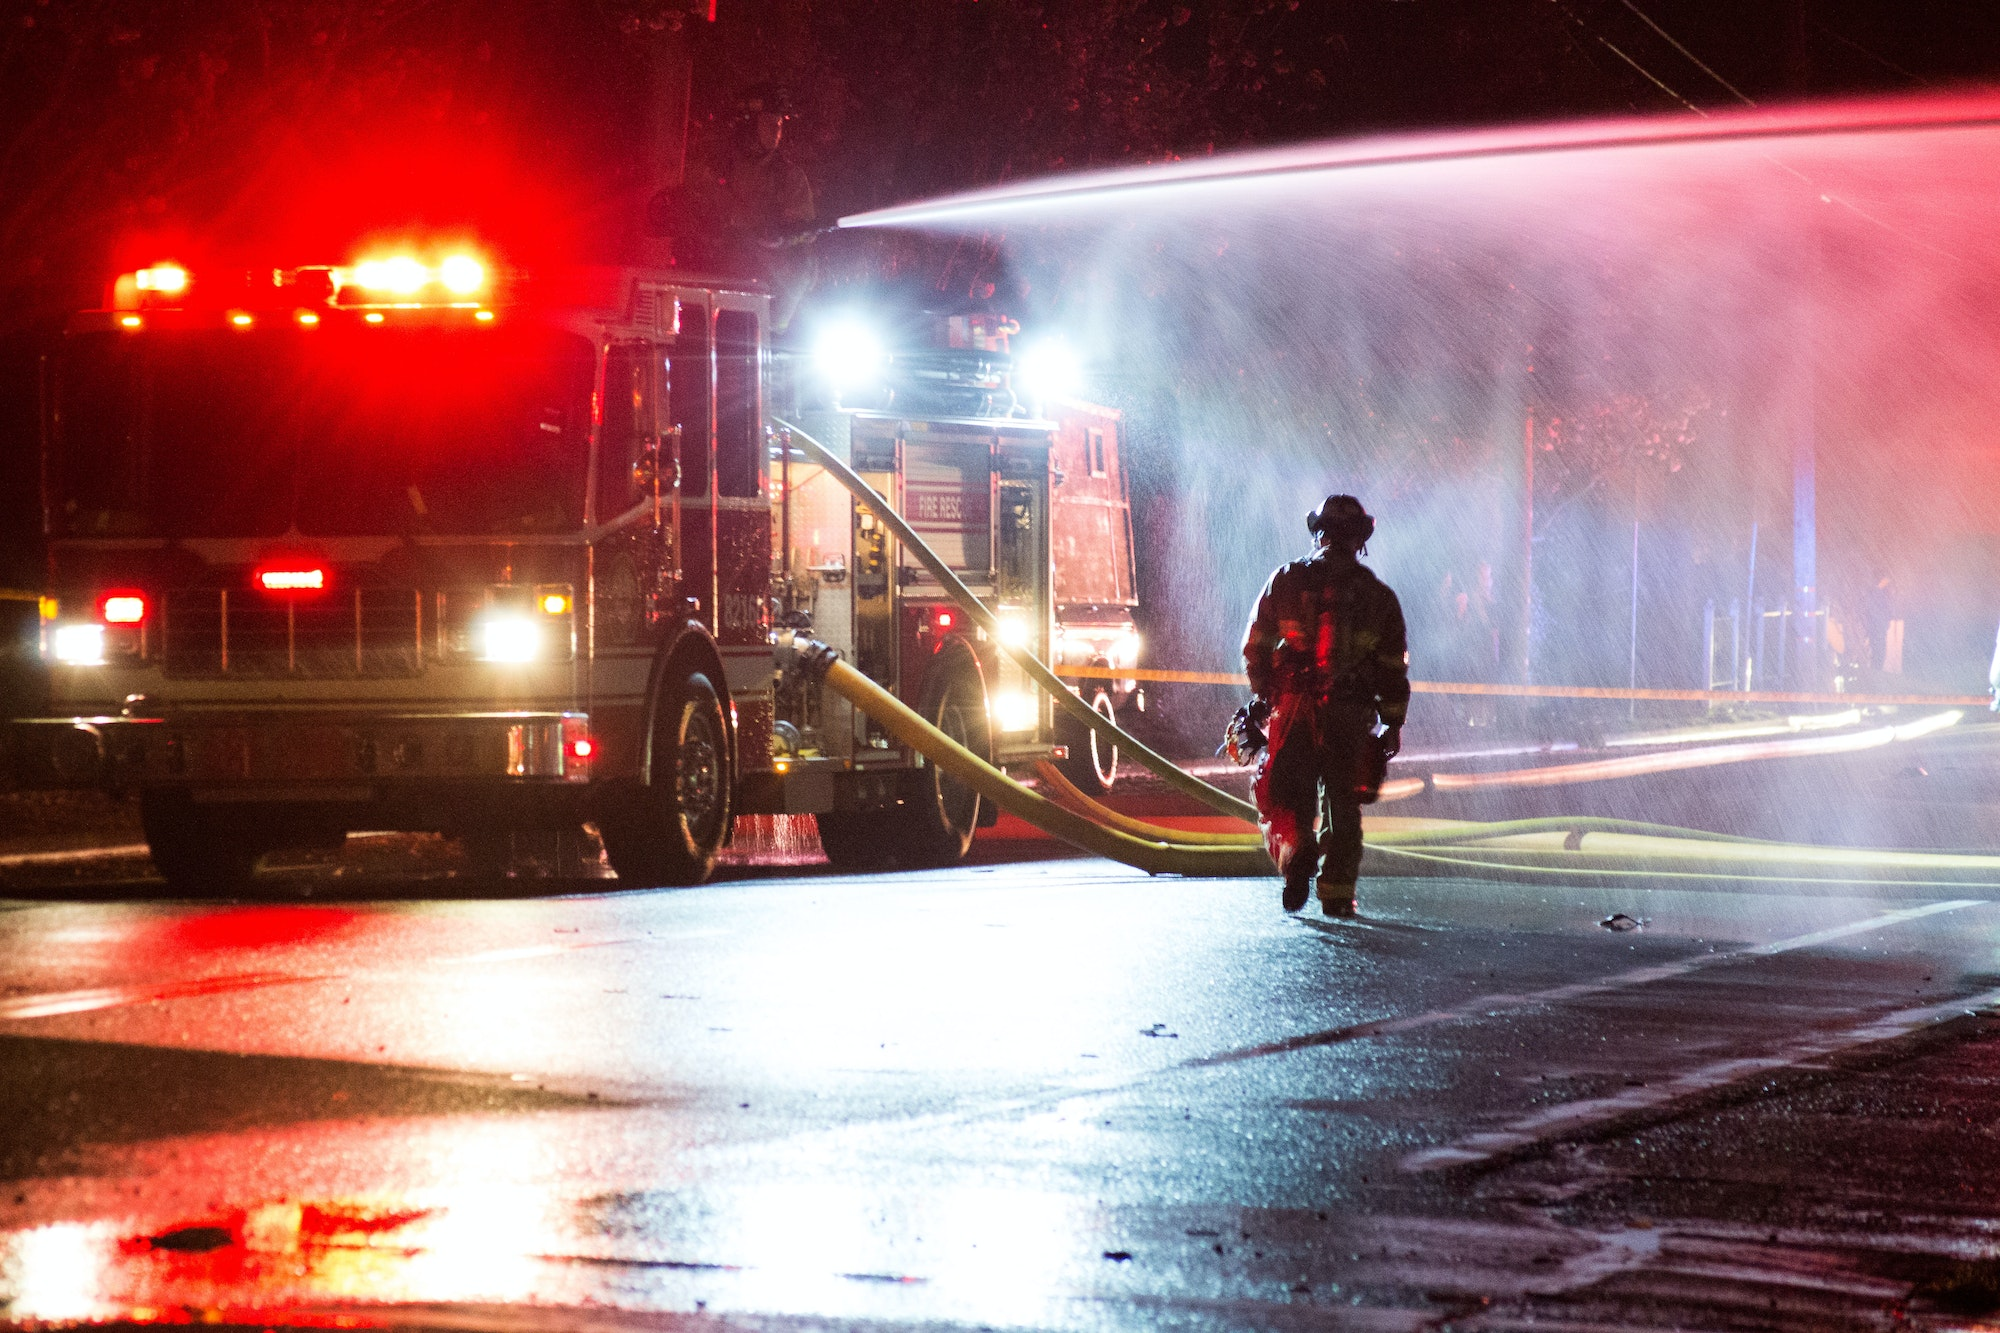 Fire fighter walking next to a pumper at night.